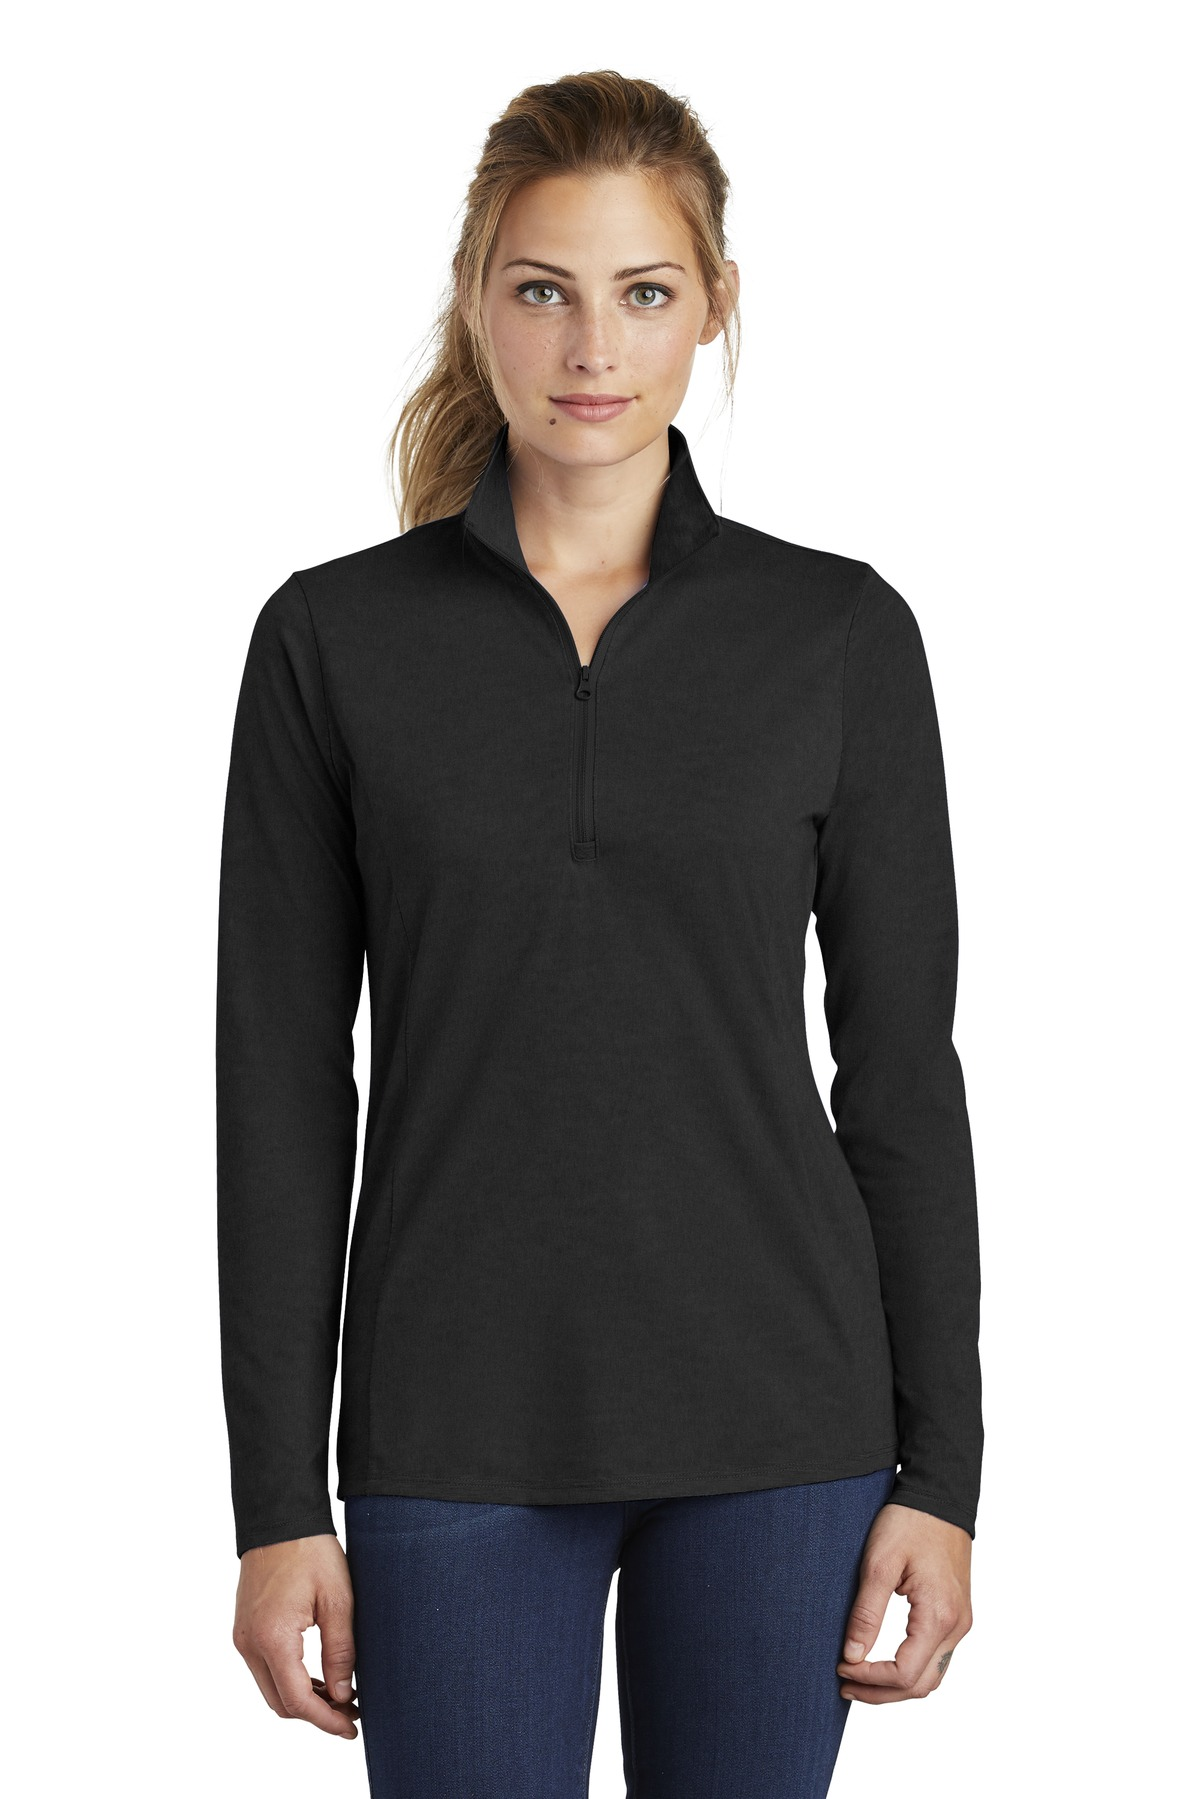 Sport-Tek  ®  Ladies PosiCharge  ®  Tri-Blend Wicking 1/4-Zip Pullover. LST407 - Black Triad Solid